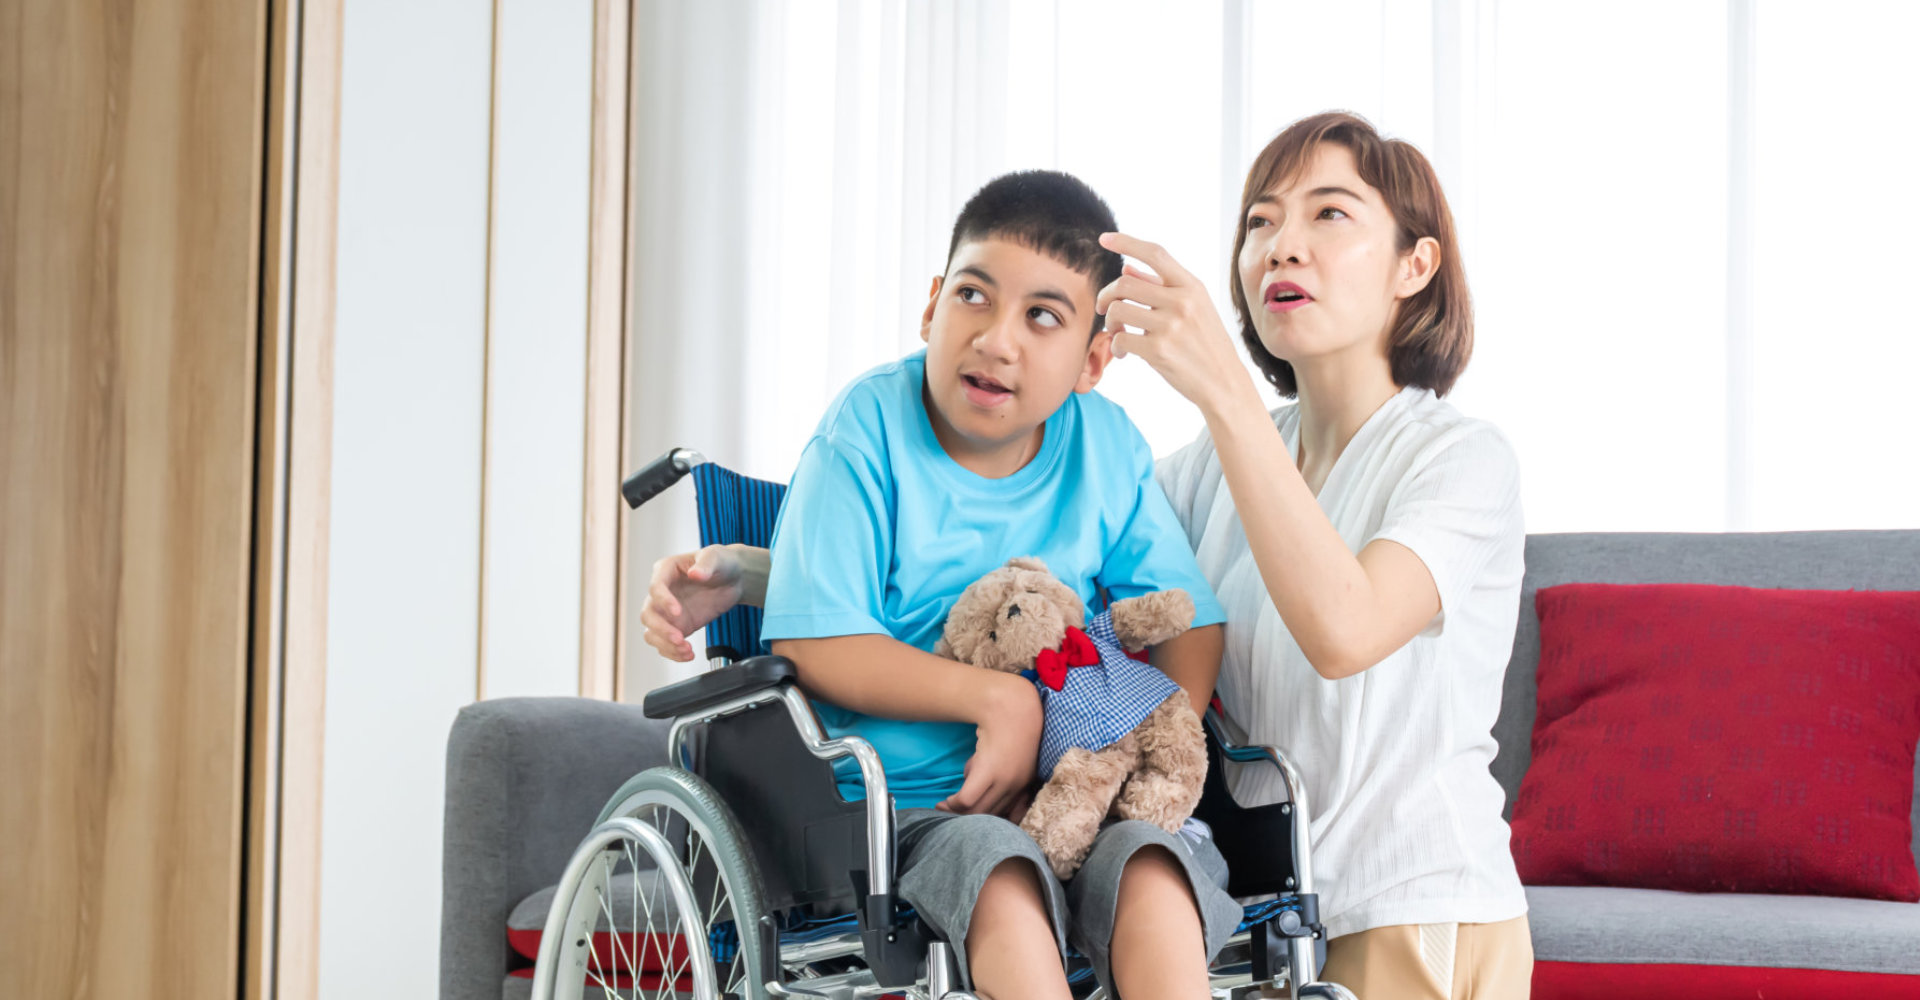 young boy on a wheelchair with his companion